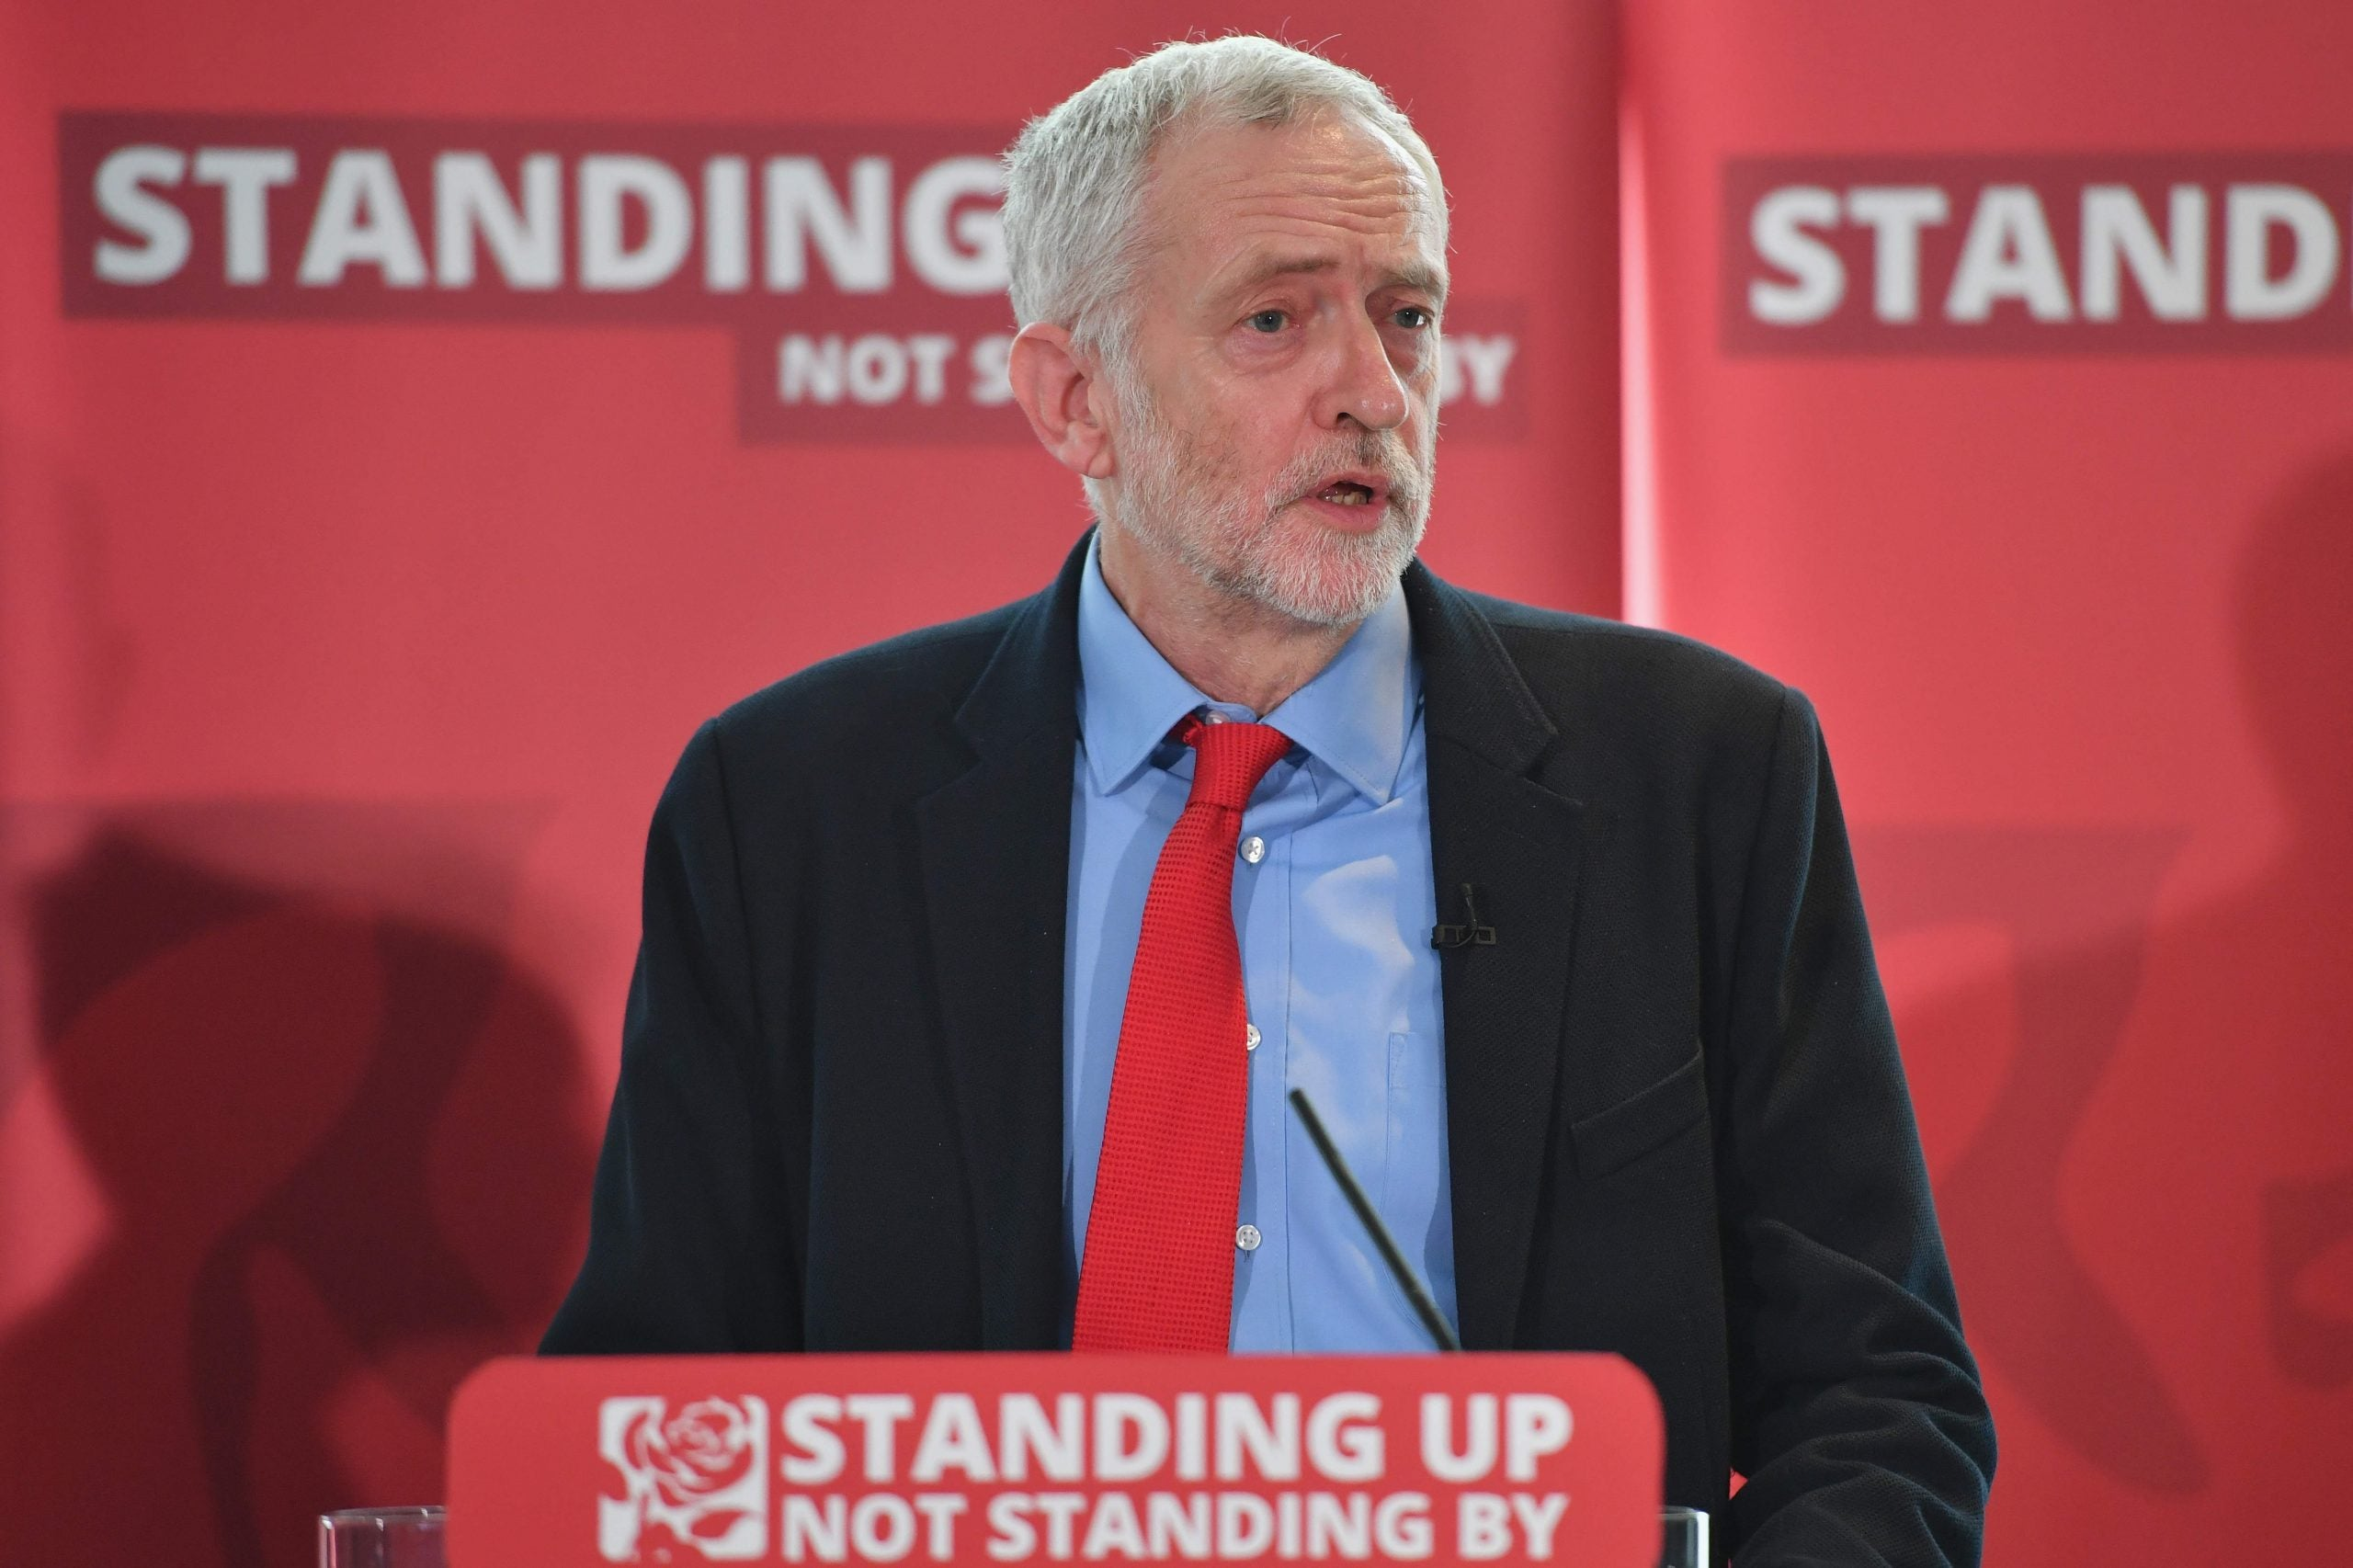 To speak for Britain, Labour must first tackle the anti-Semitism within its ranks